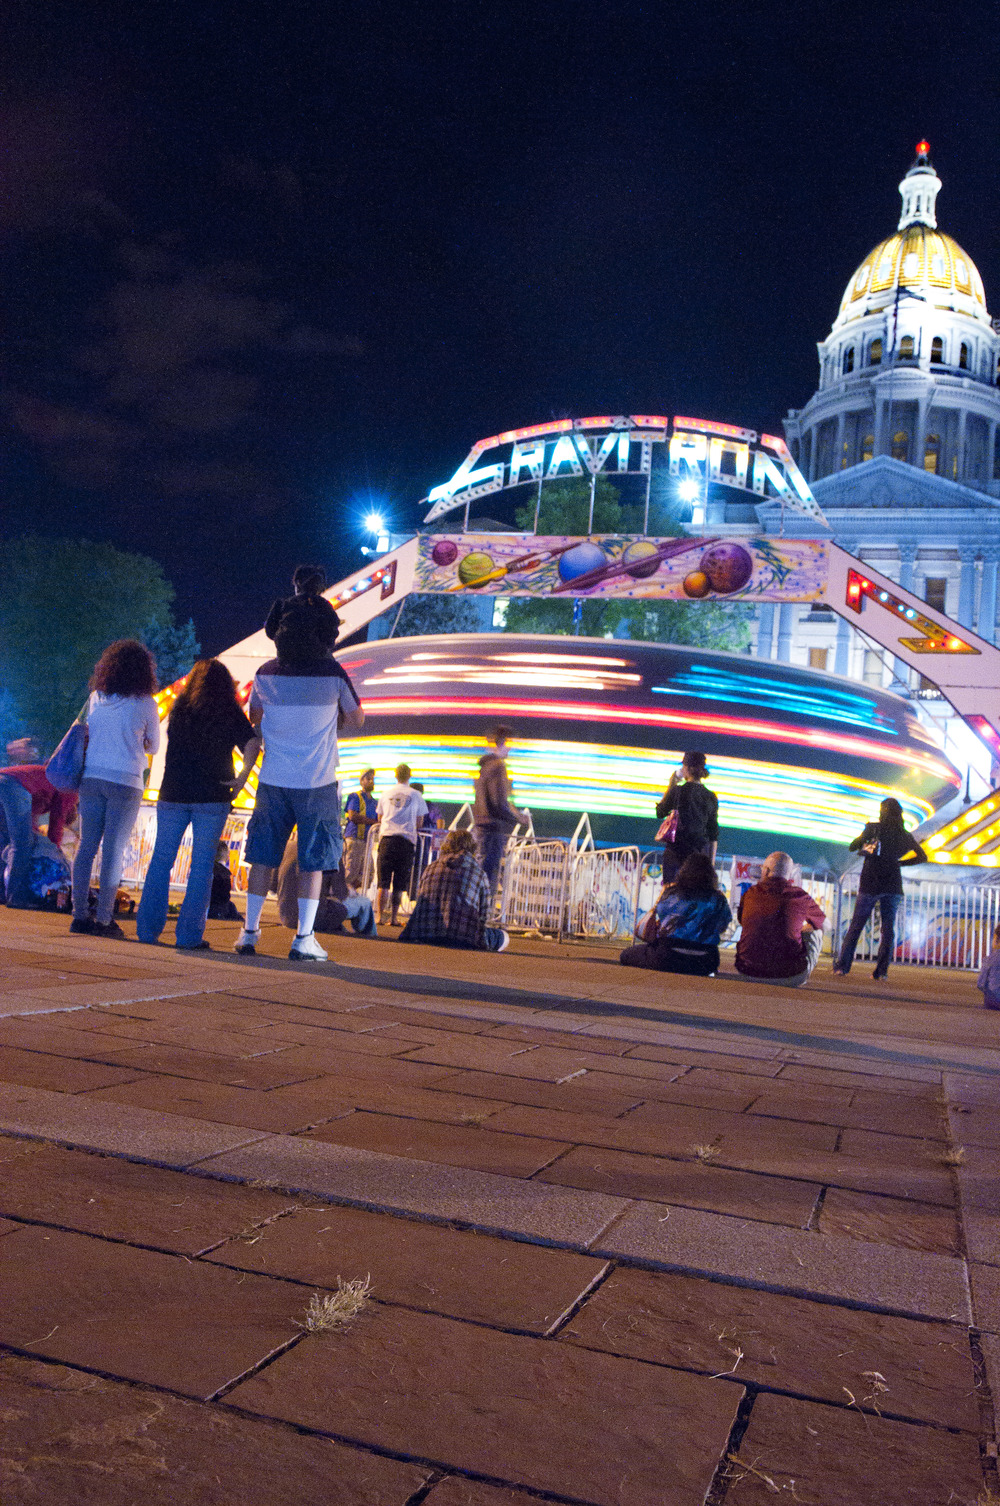 The Taste of Colorado winds down in front of the Colorado State Capitol as the festival's rides spin the last of their riders. The yearly festival brings huge crowds to Denver's heart over Labor Day weekend.